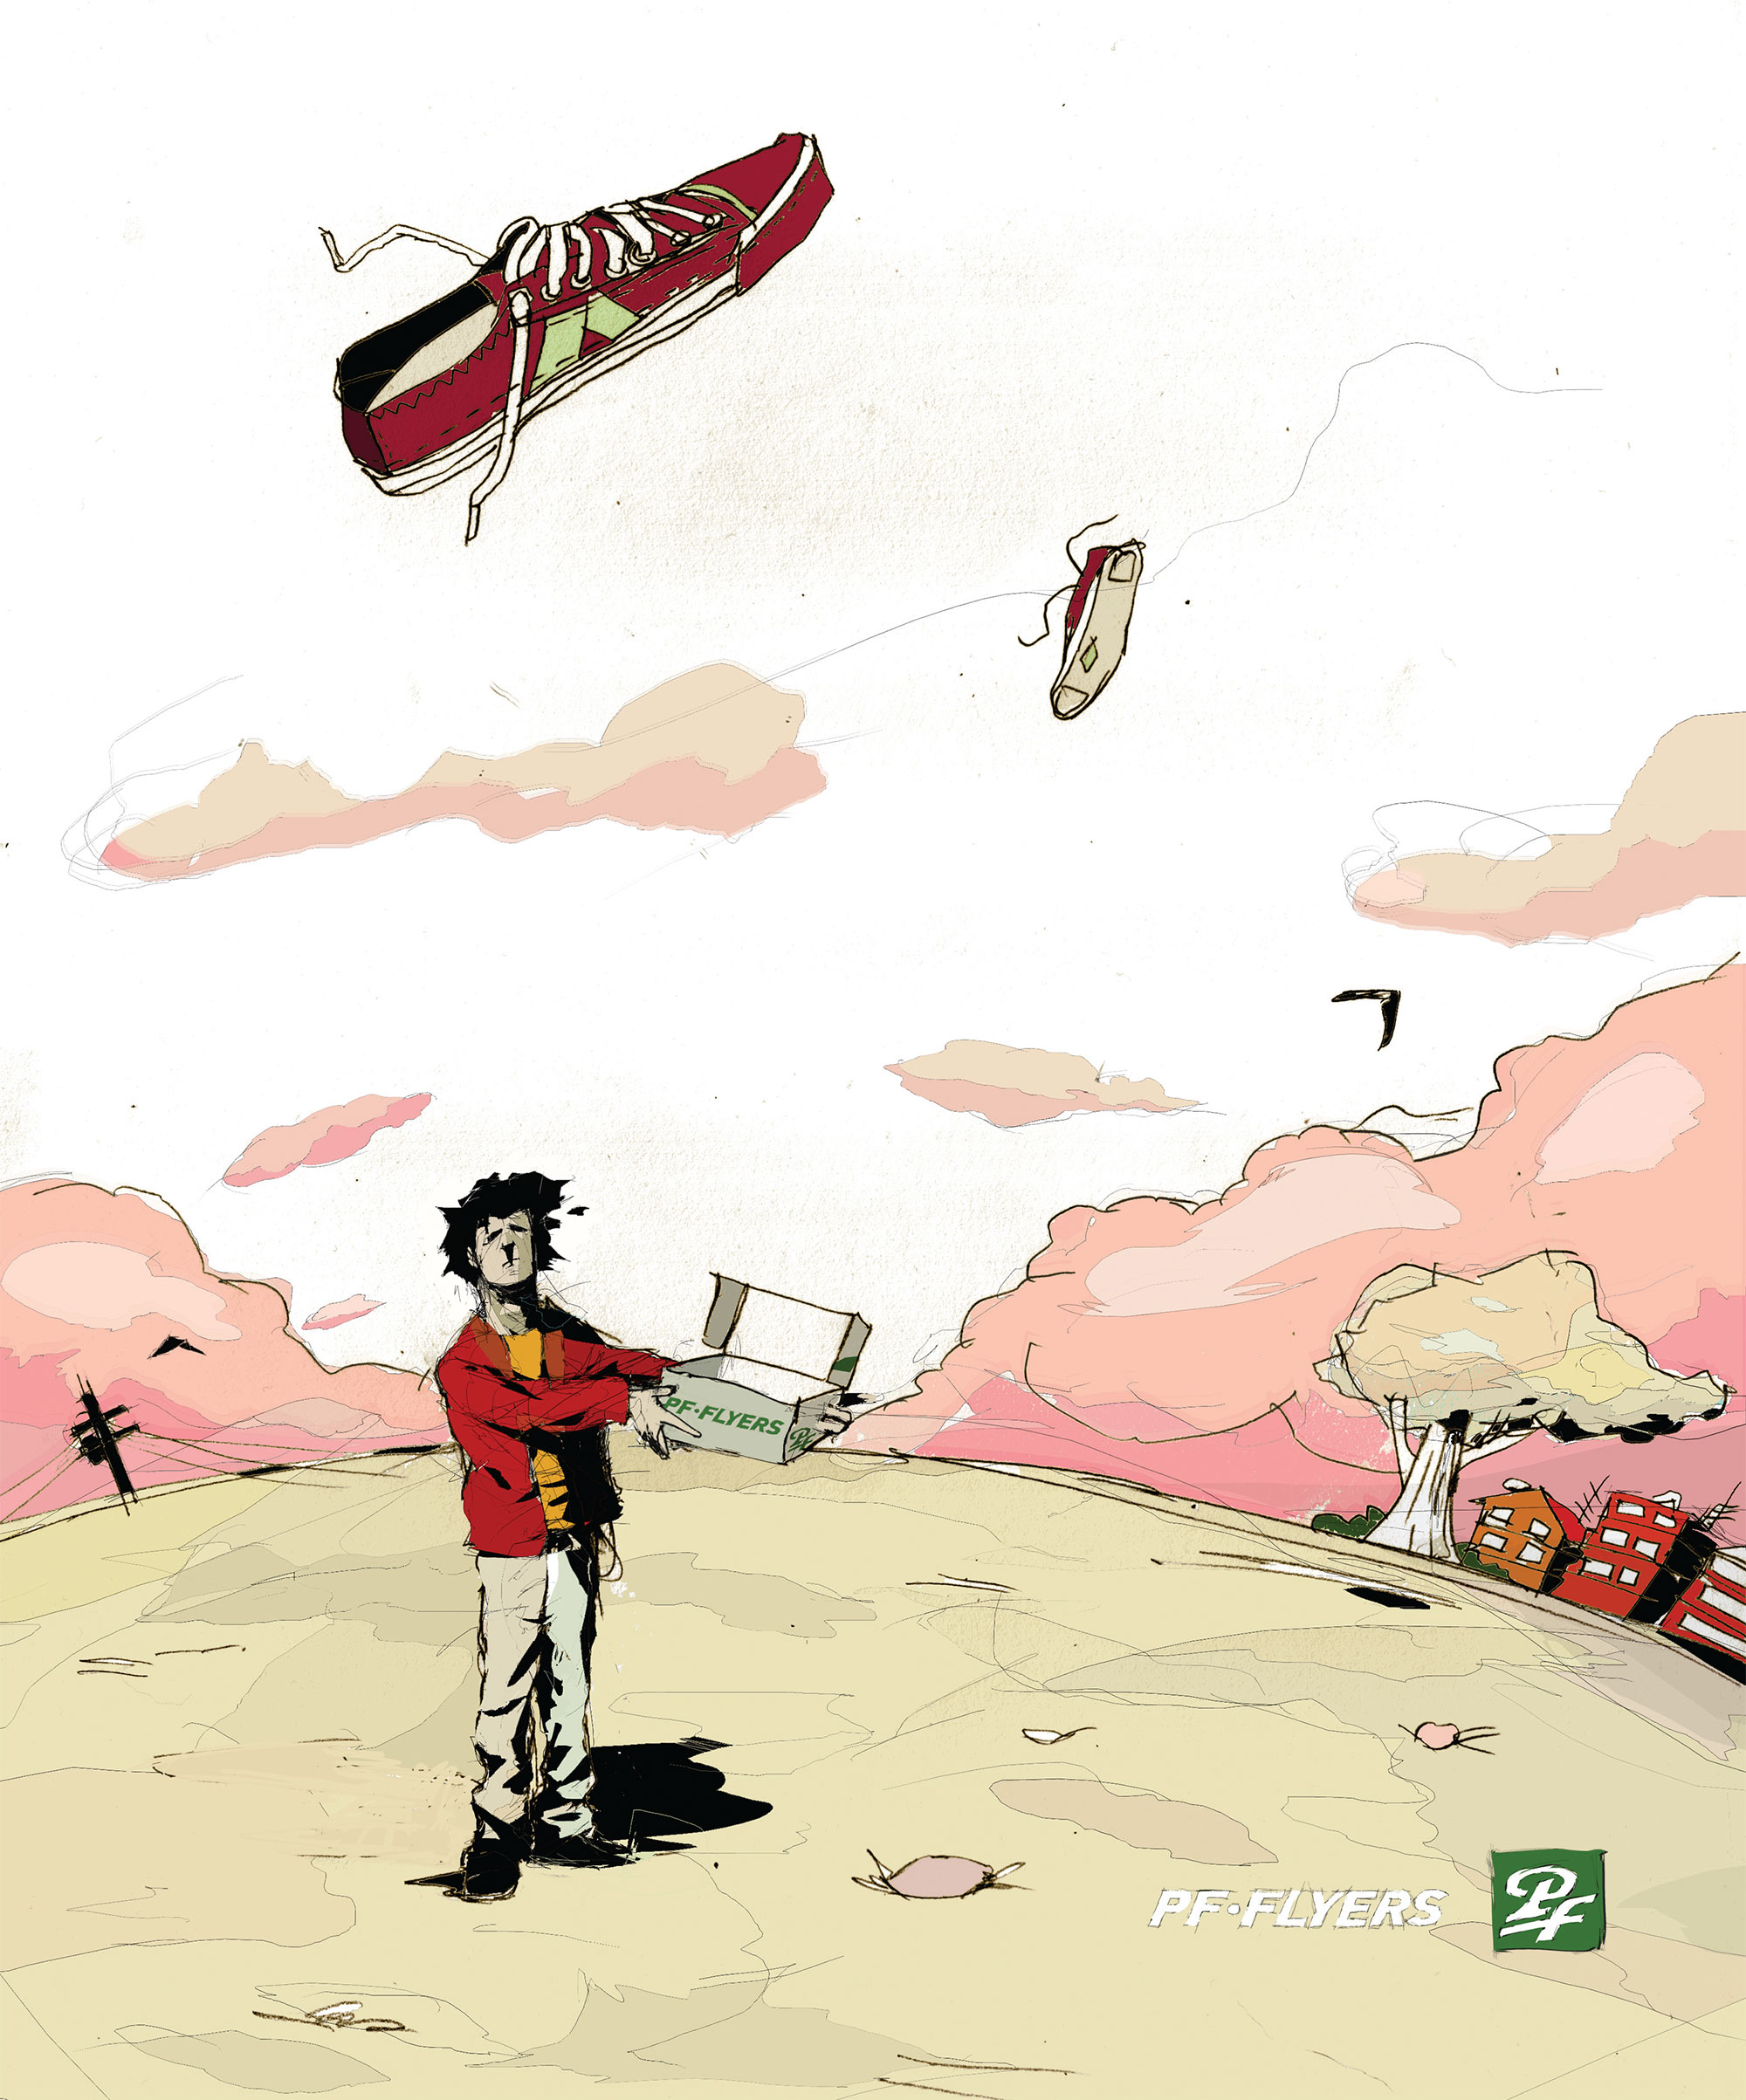 image of PF Flyers illustration ad